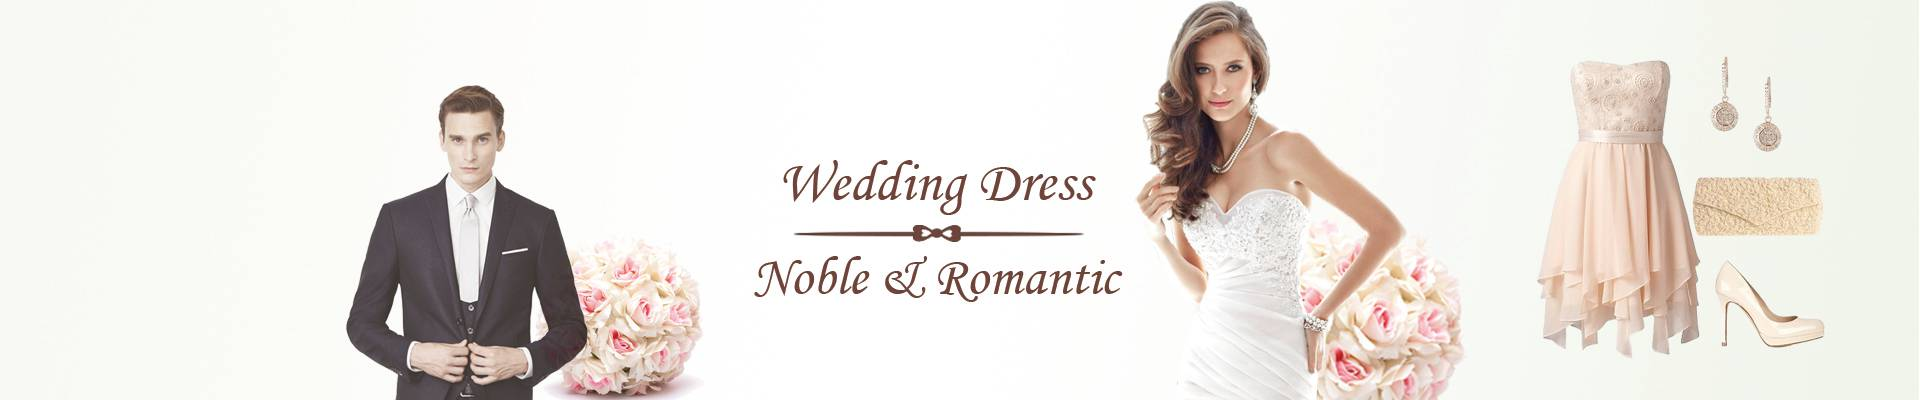 Wedding dresses introduction